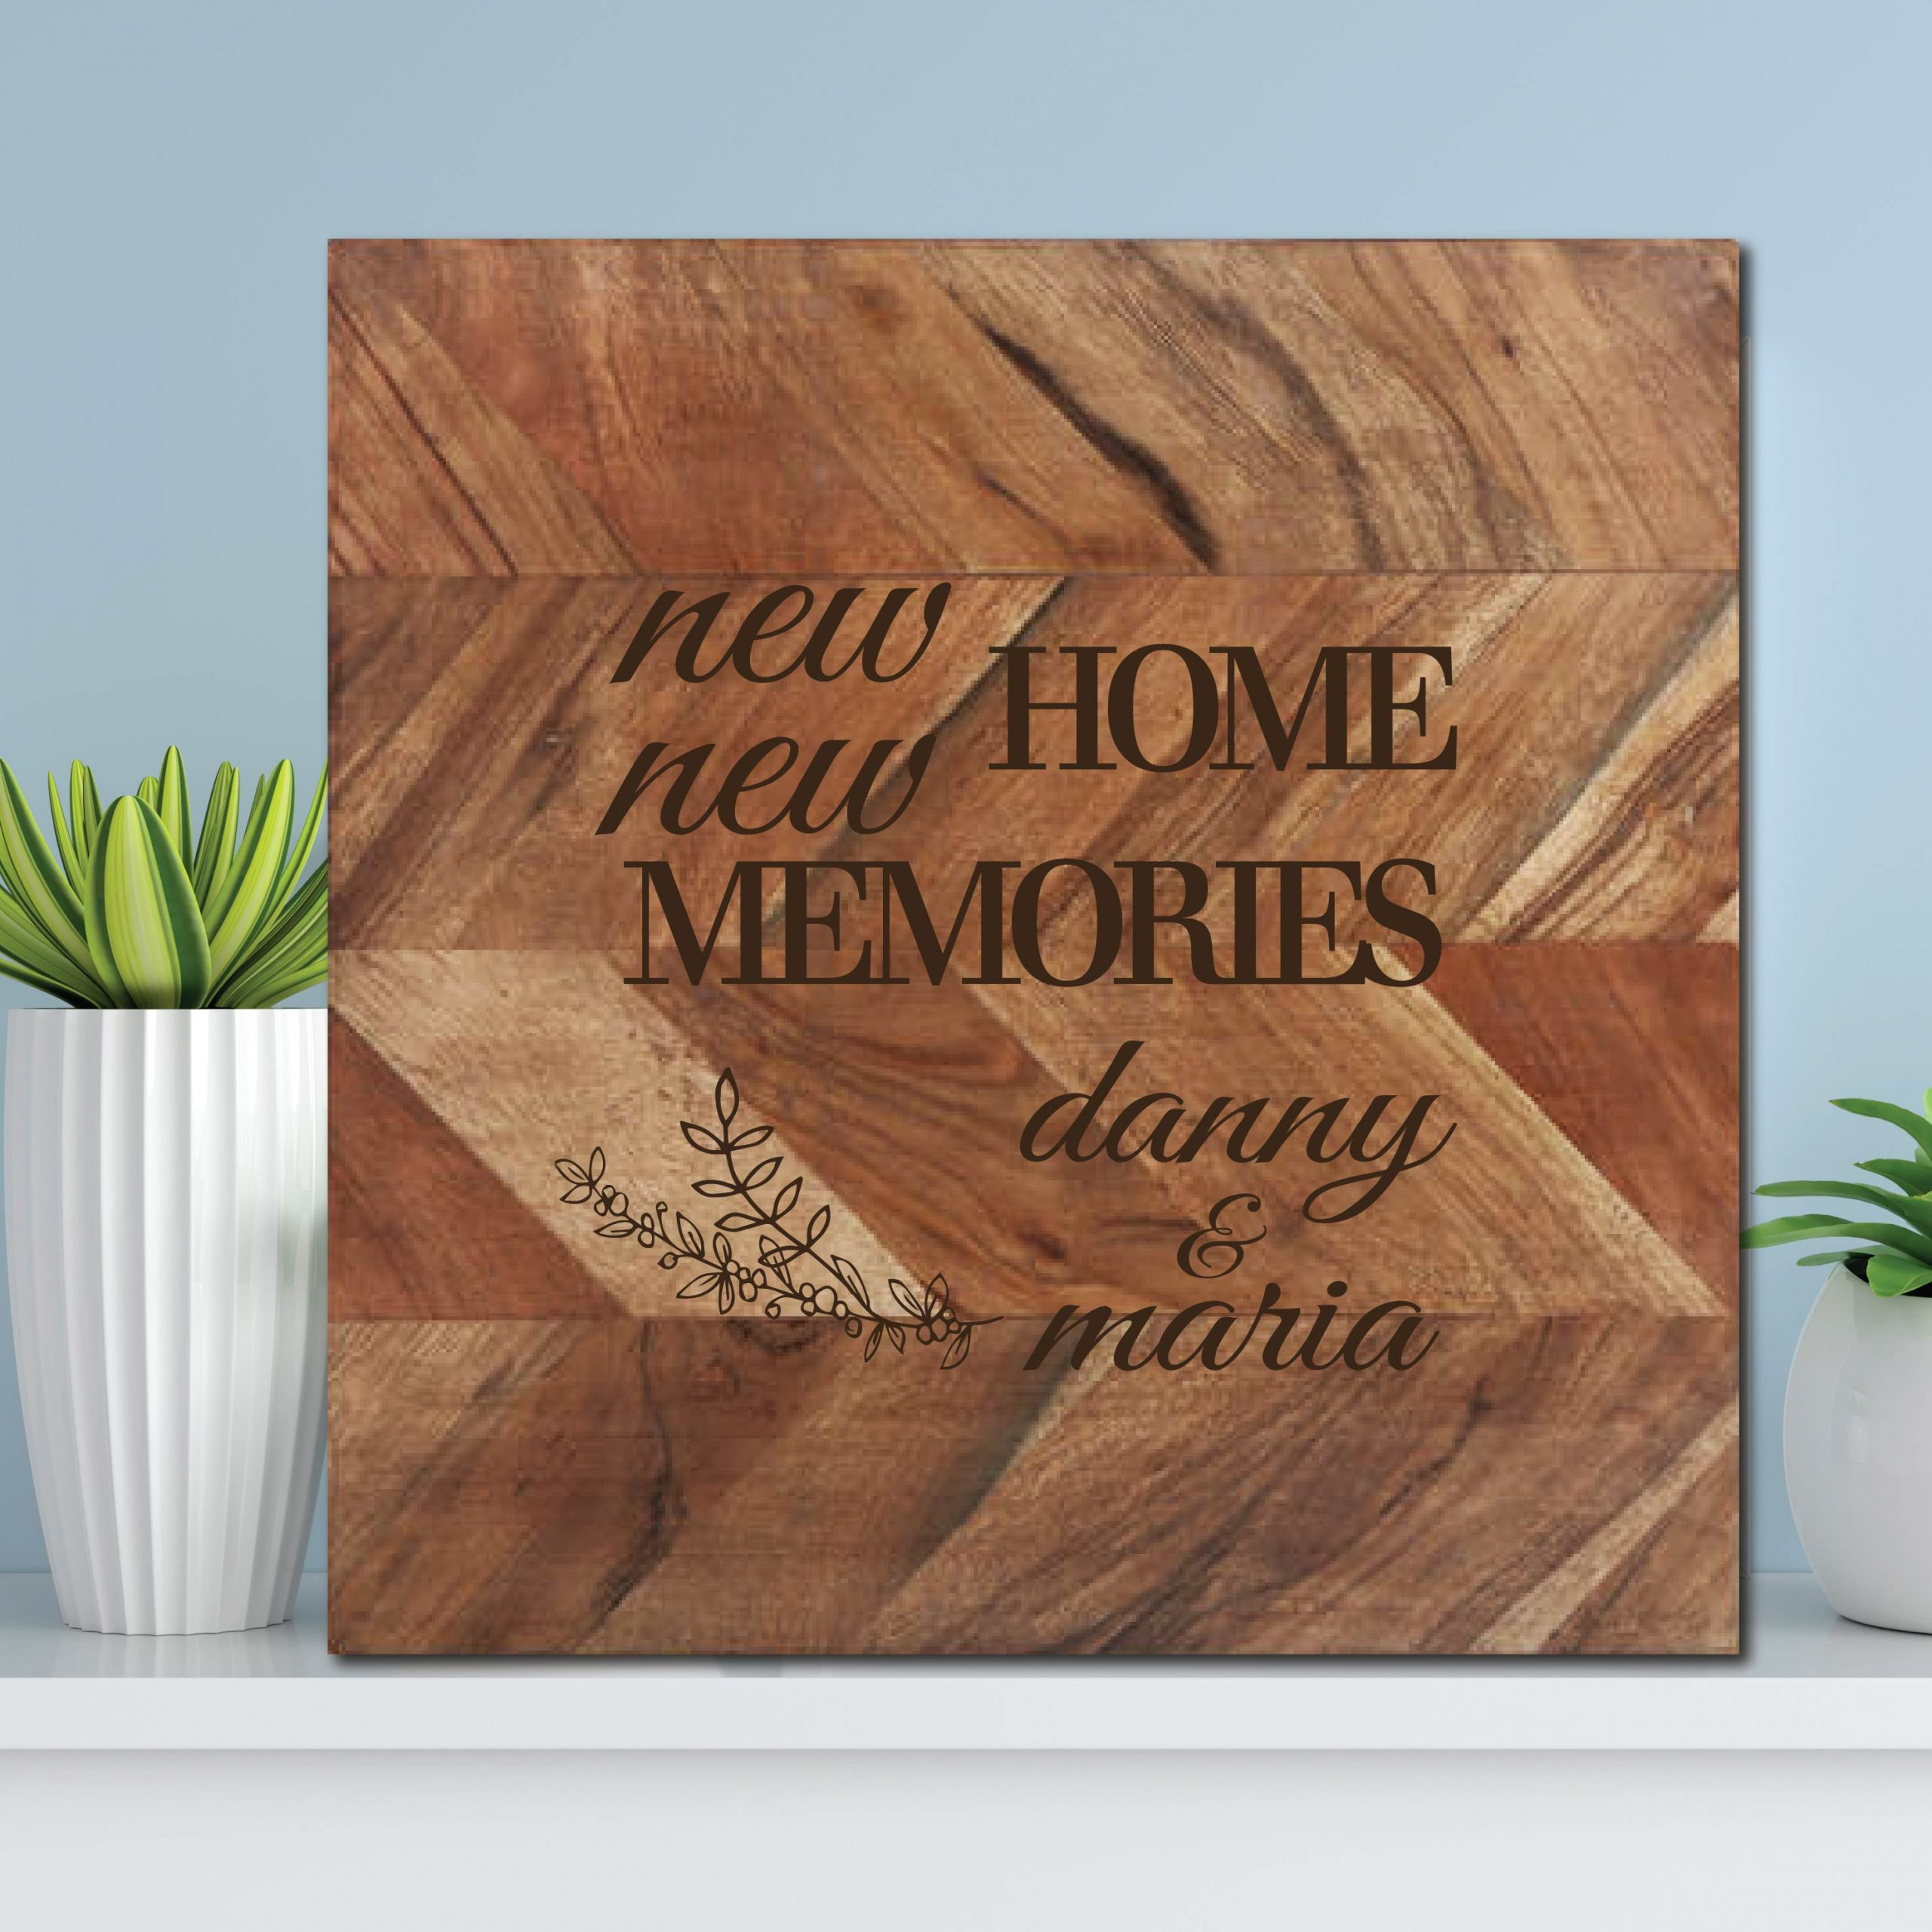 New Home New Memories Chopping Board